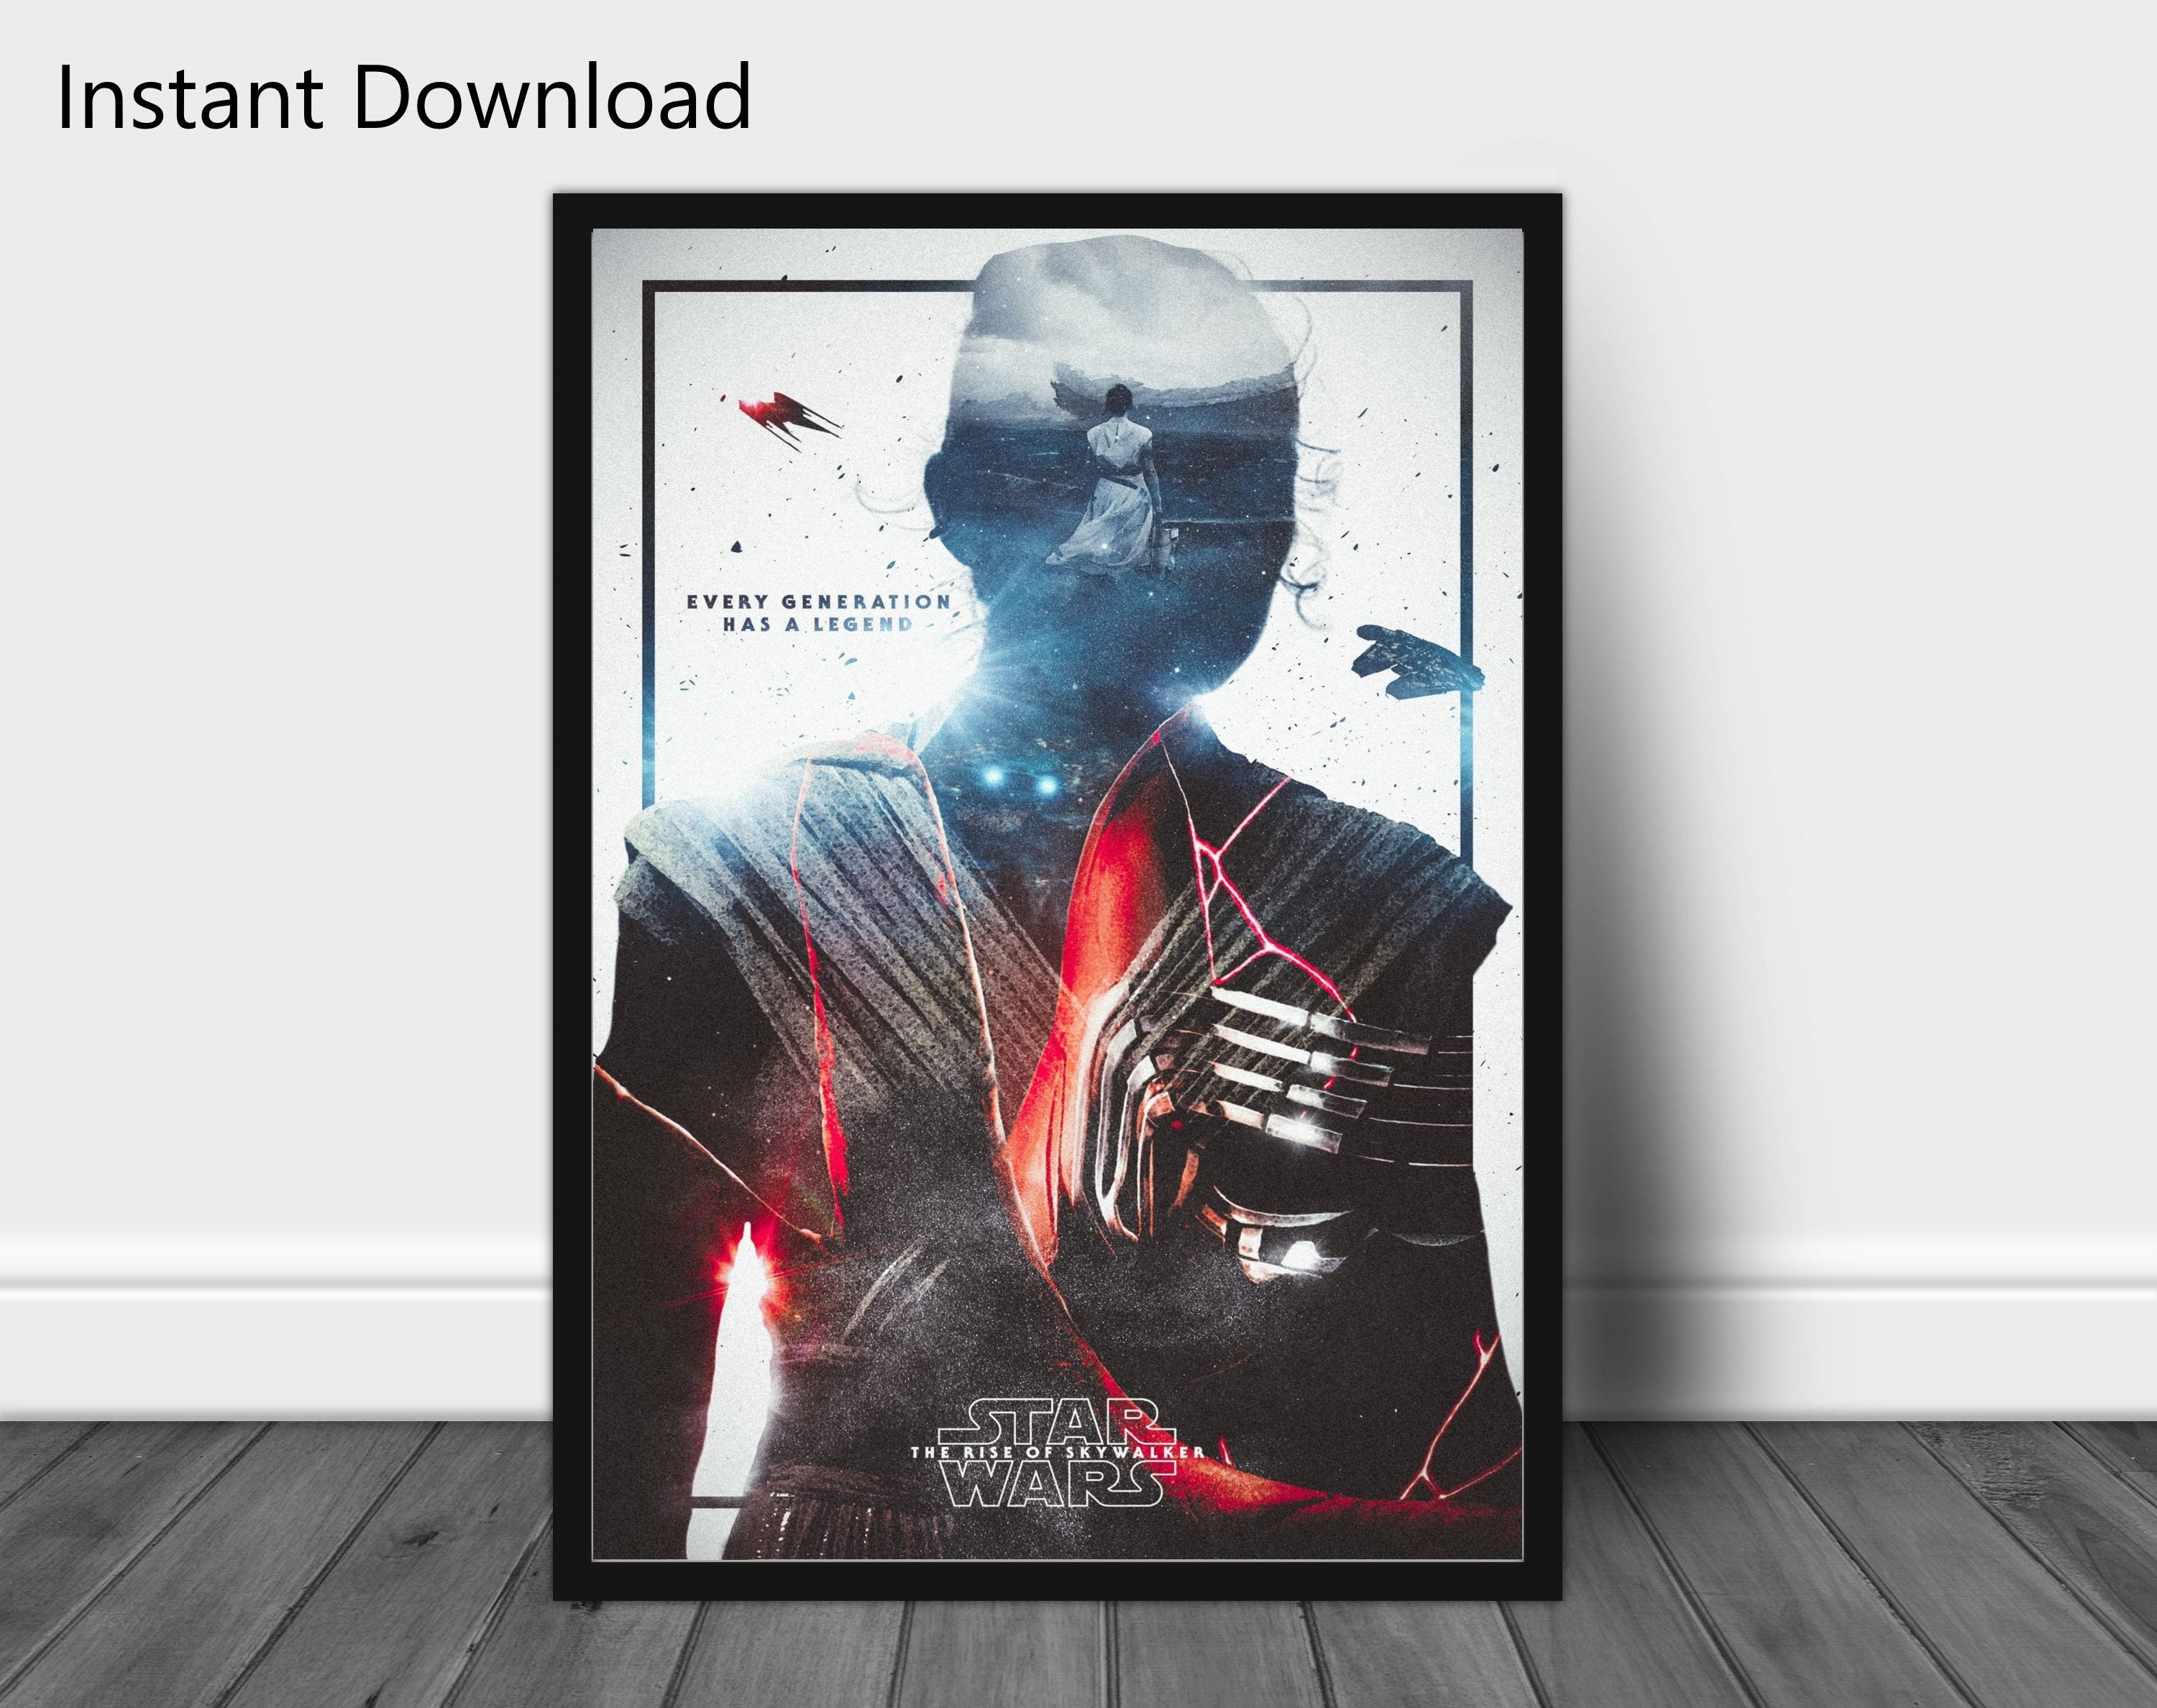 Star Wars The Rise Of Skywalker Instant Download Vintage Etsy